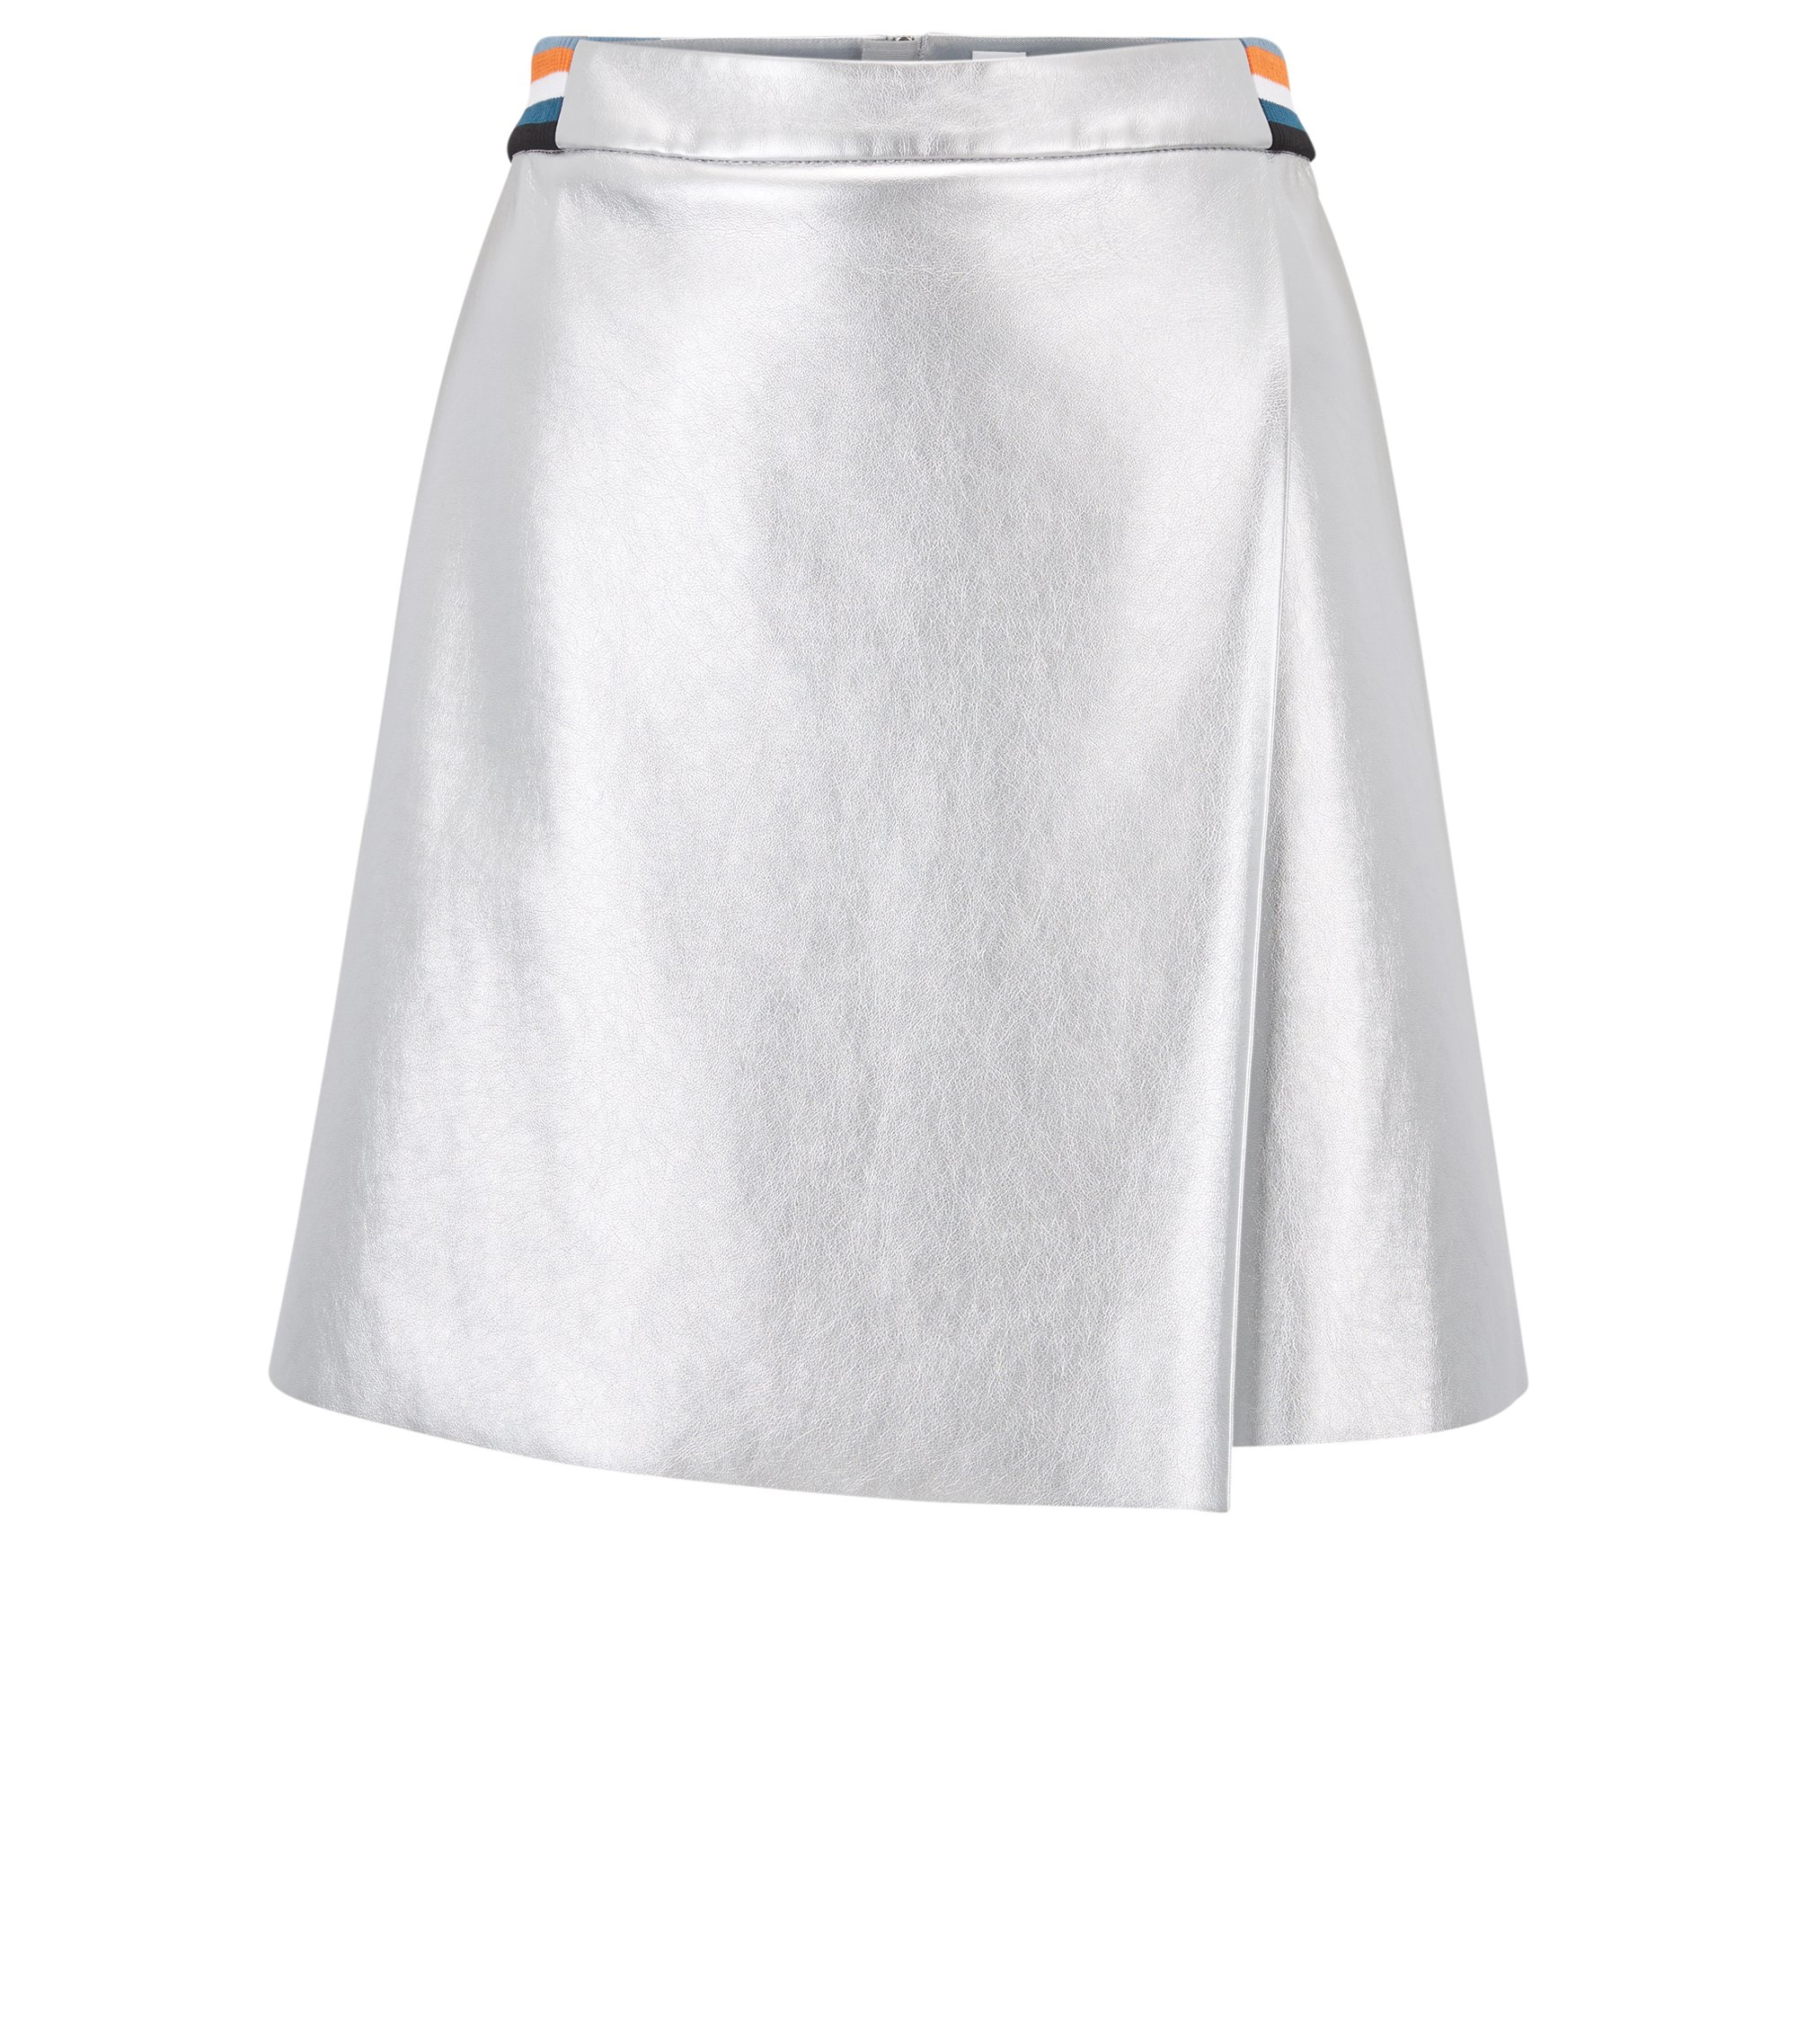 A-line skirt in metallic faux leather with striped waistband, Silver